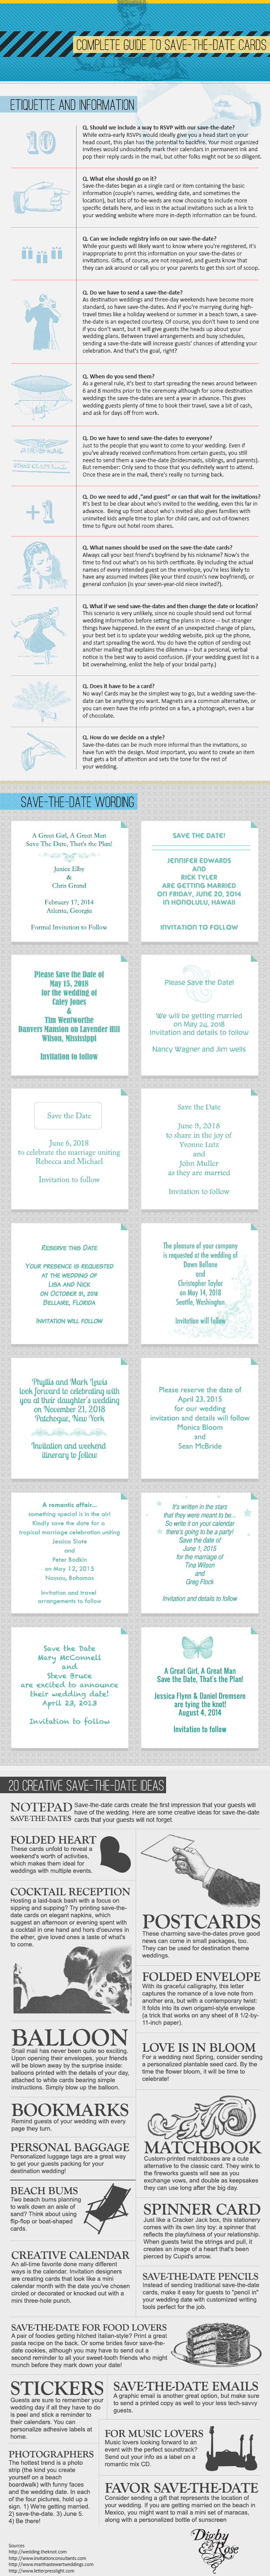 15 Destination Wedding Save the Date Wording Examples – Save the Date Wording for Destination Wedding